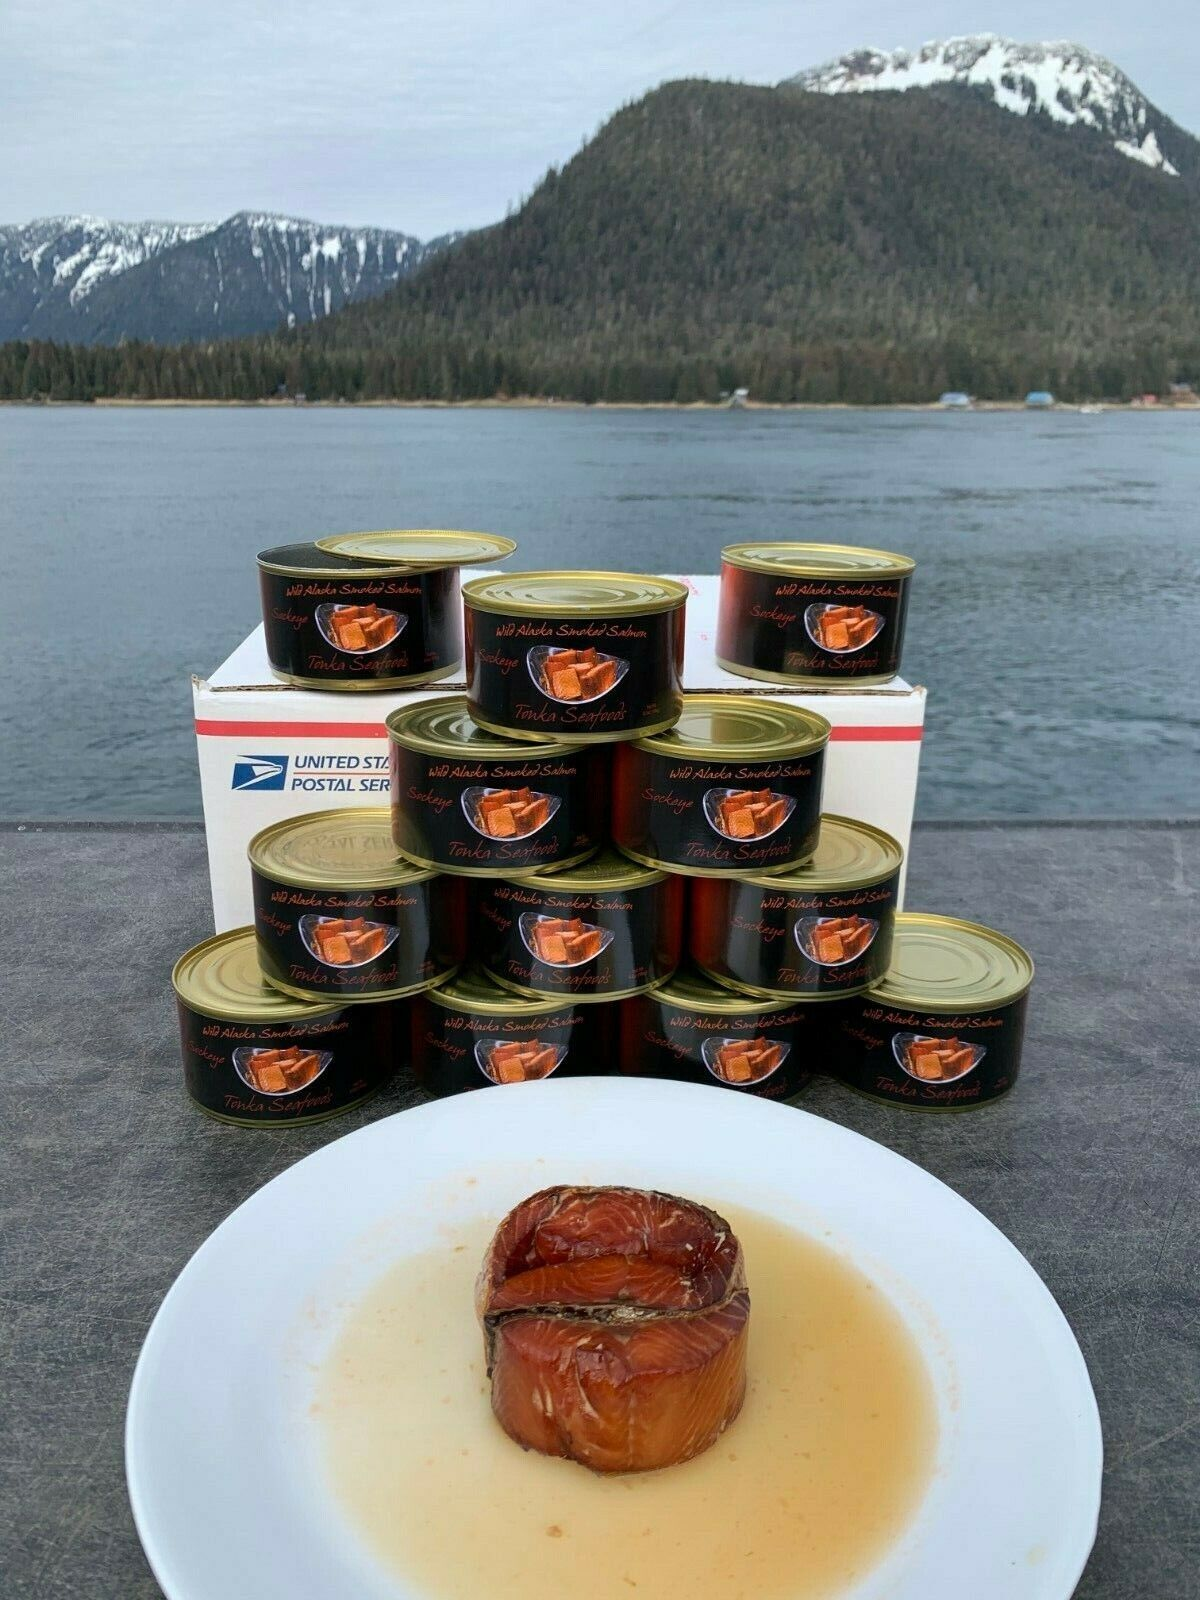 12 Cans of Wild Alaskan Alder Smoked Sockeye Salmon, 6.5 oz per can, Ships Free